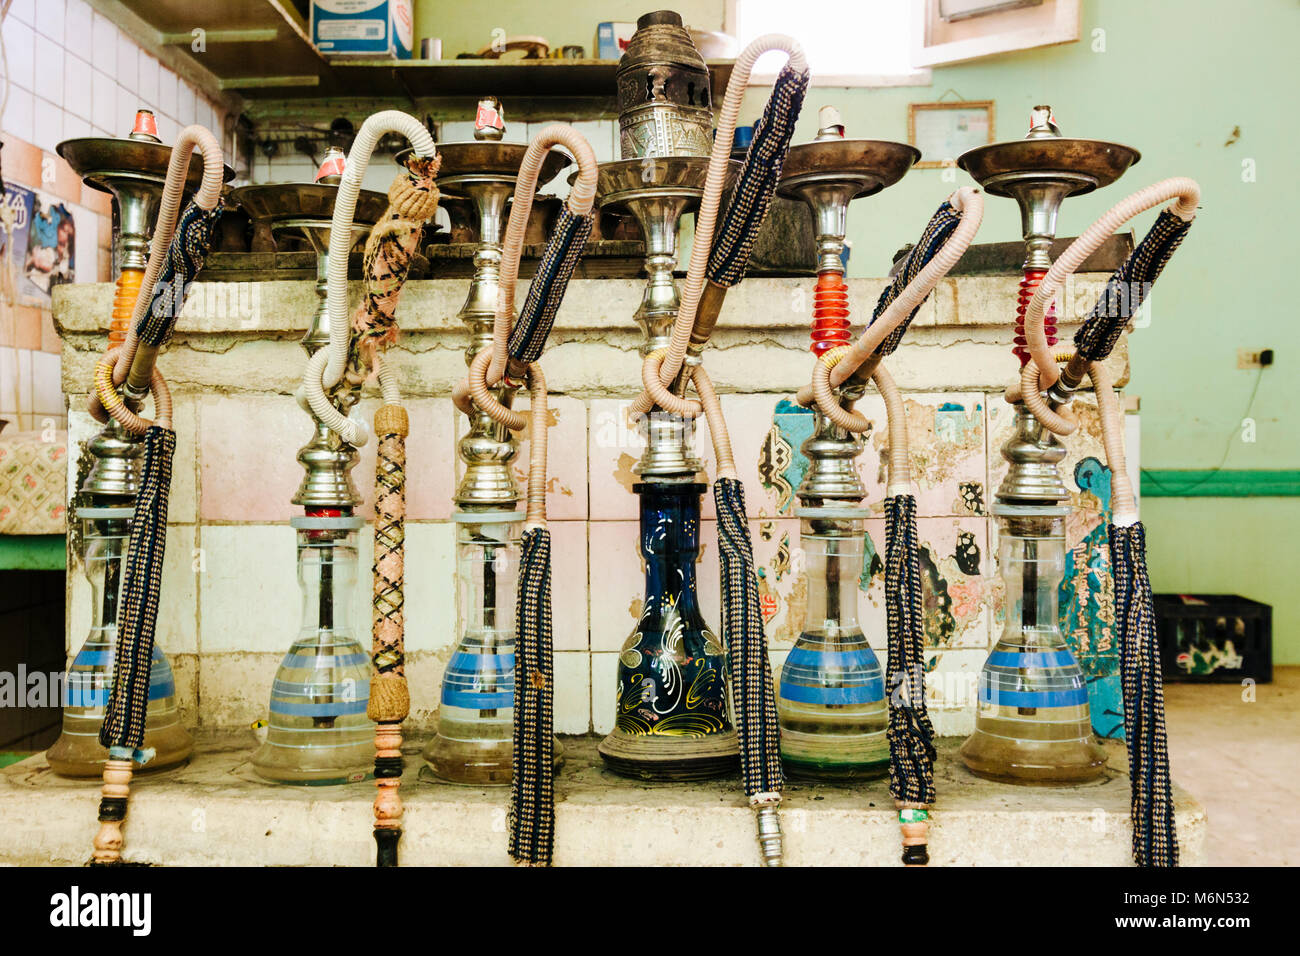 Narguile waterpipes in the kitchen of a small hotel in Dakhla oasis, Egypt - Stock Image